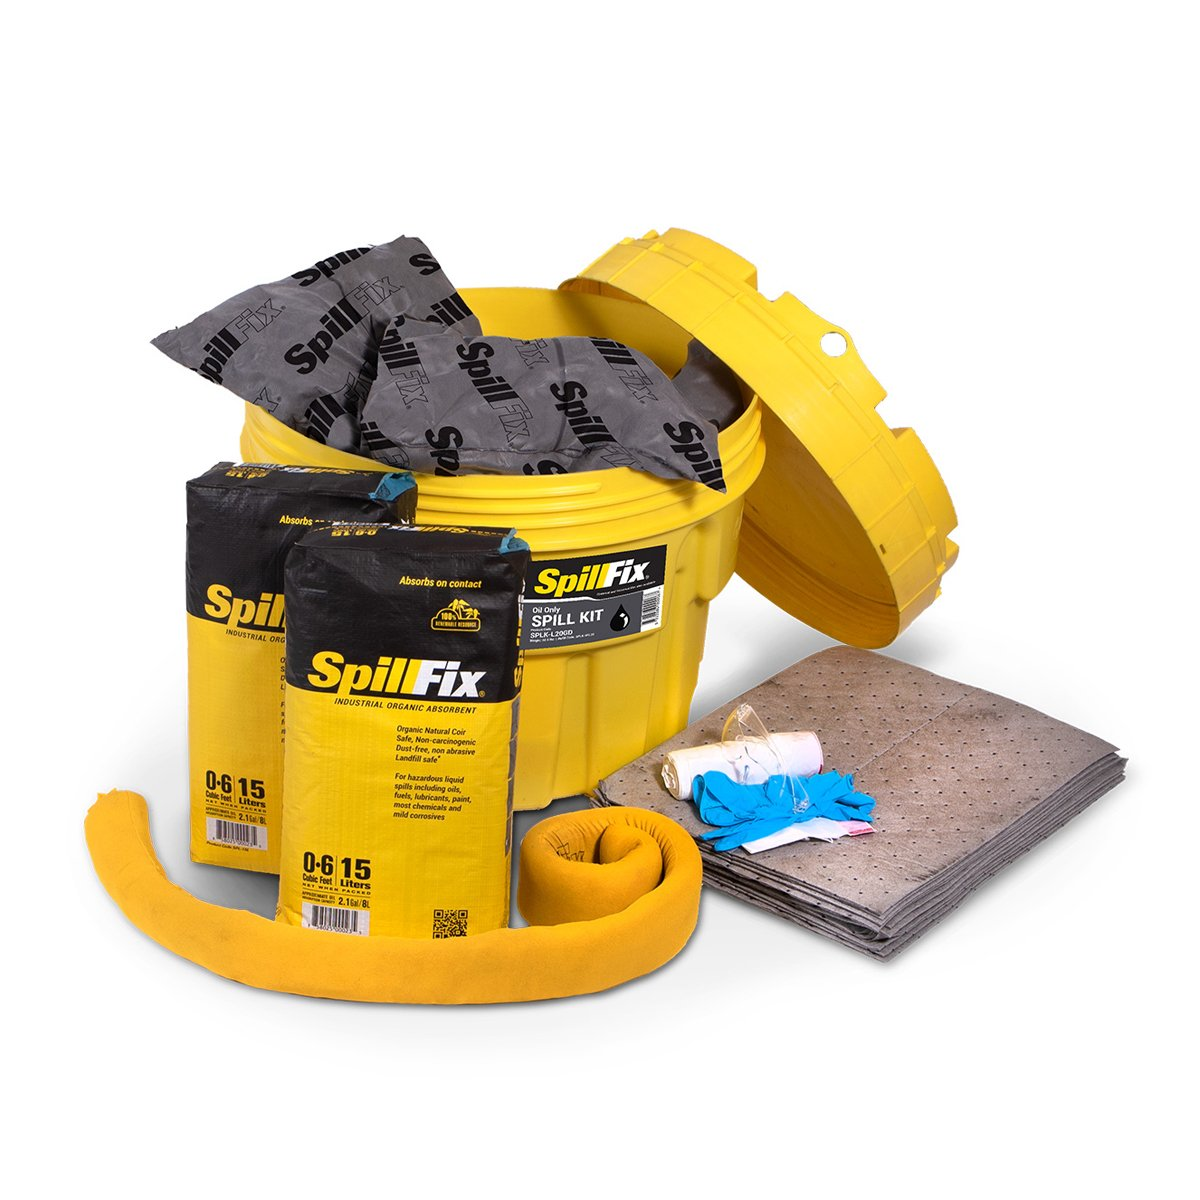 SpillFix Oil-Only Spill Kit in 20 Gallon Overpack Salvage Drum